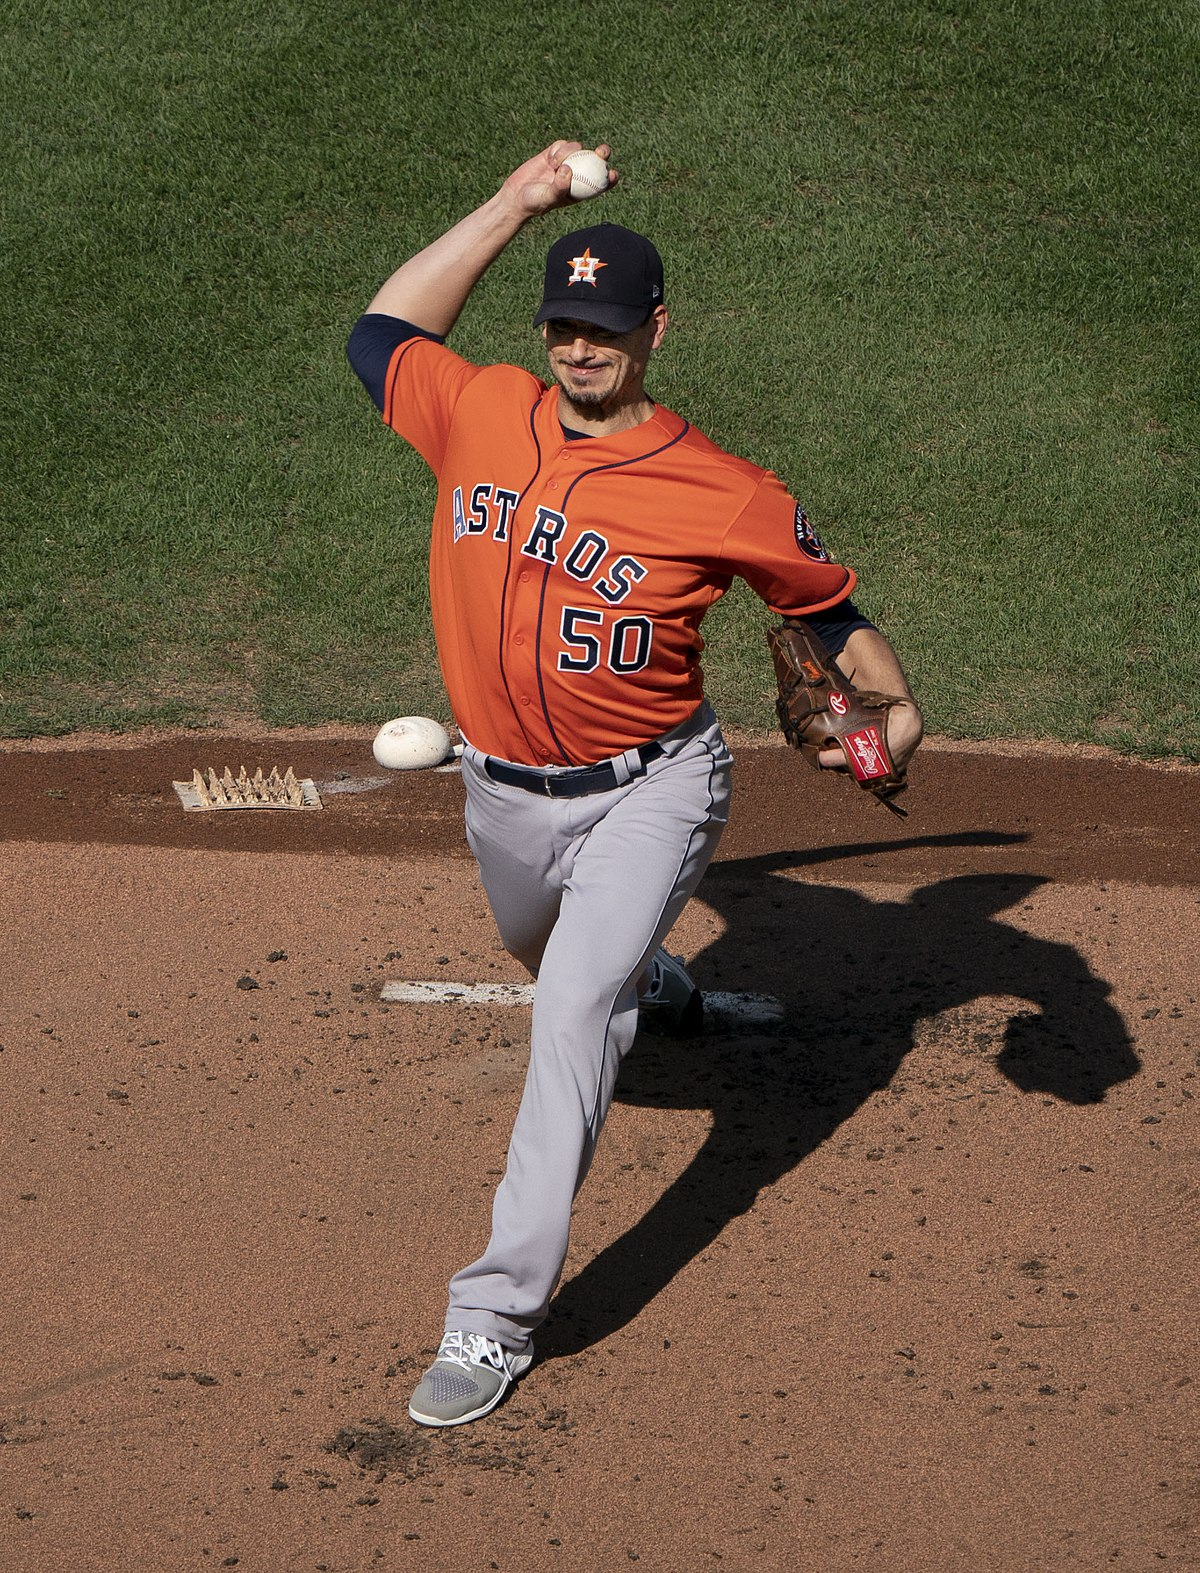 charlie morton - photo #8